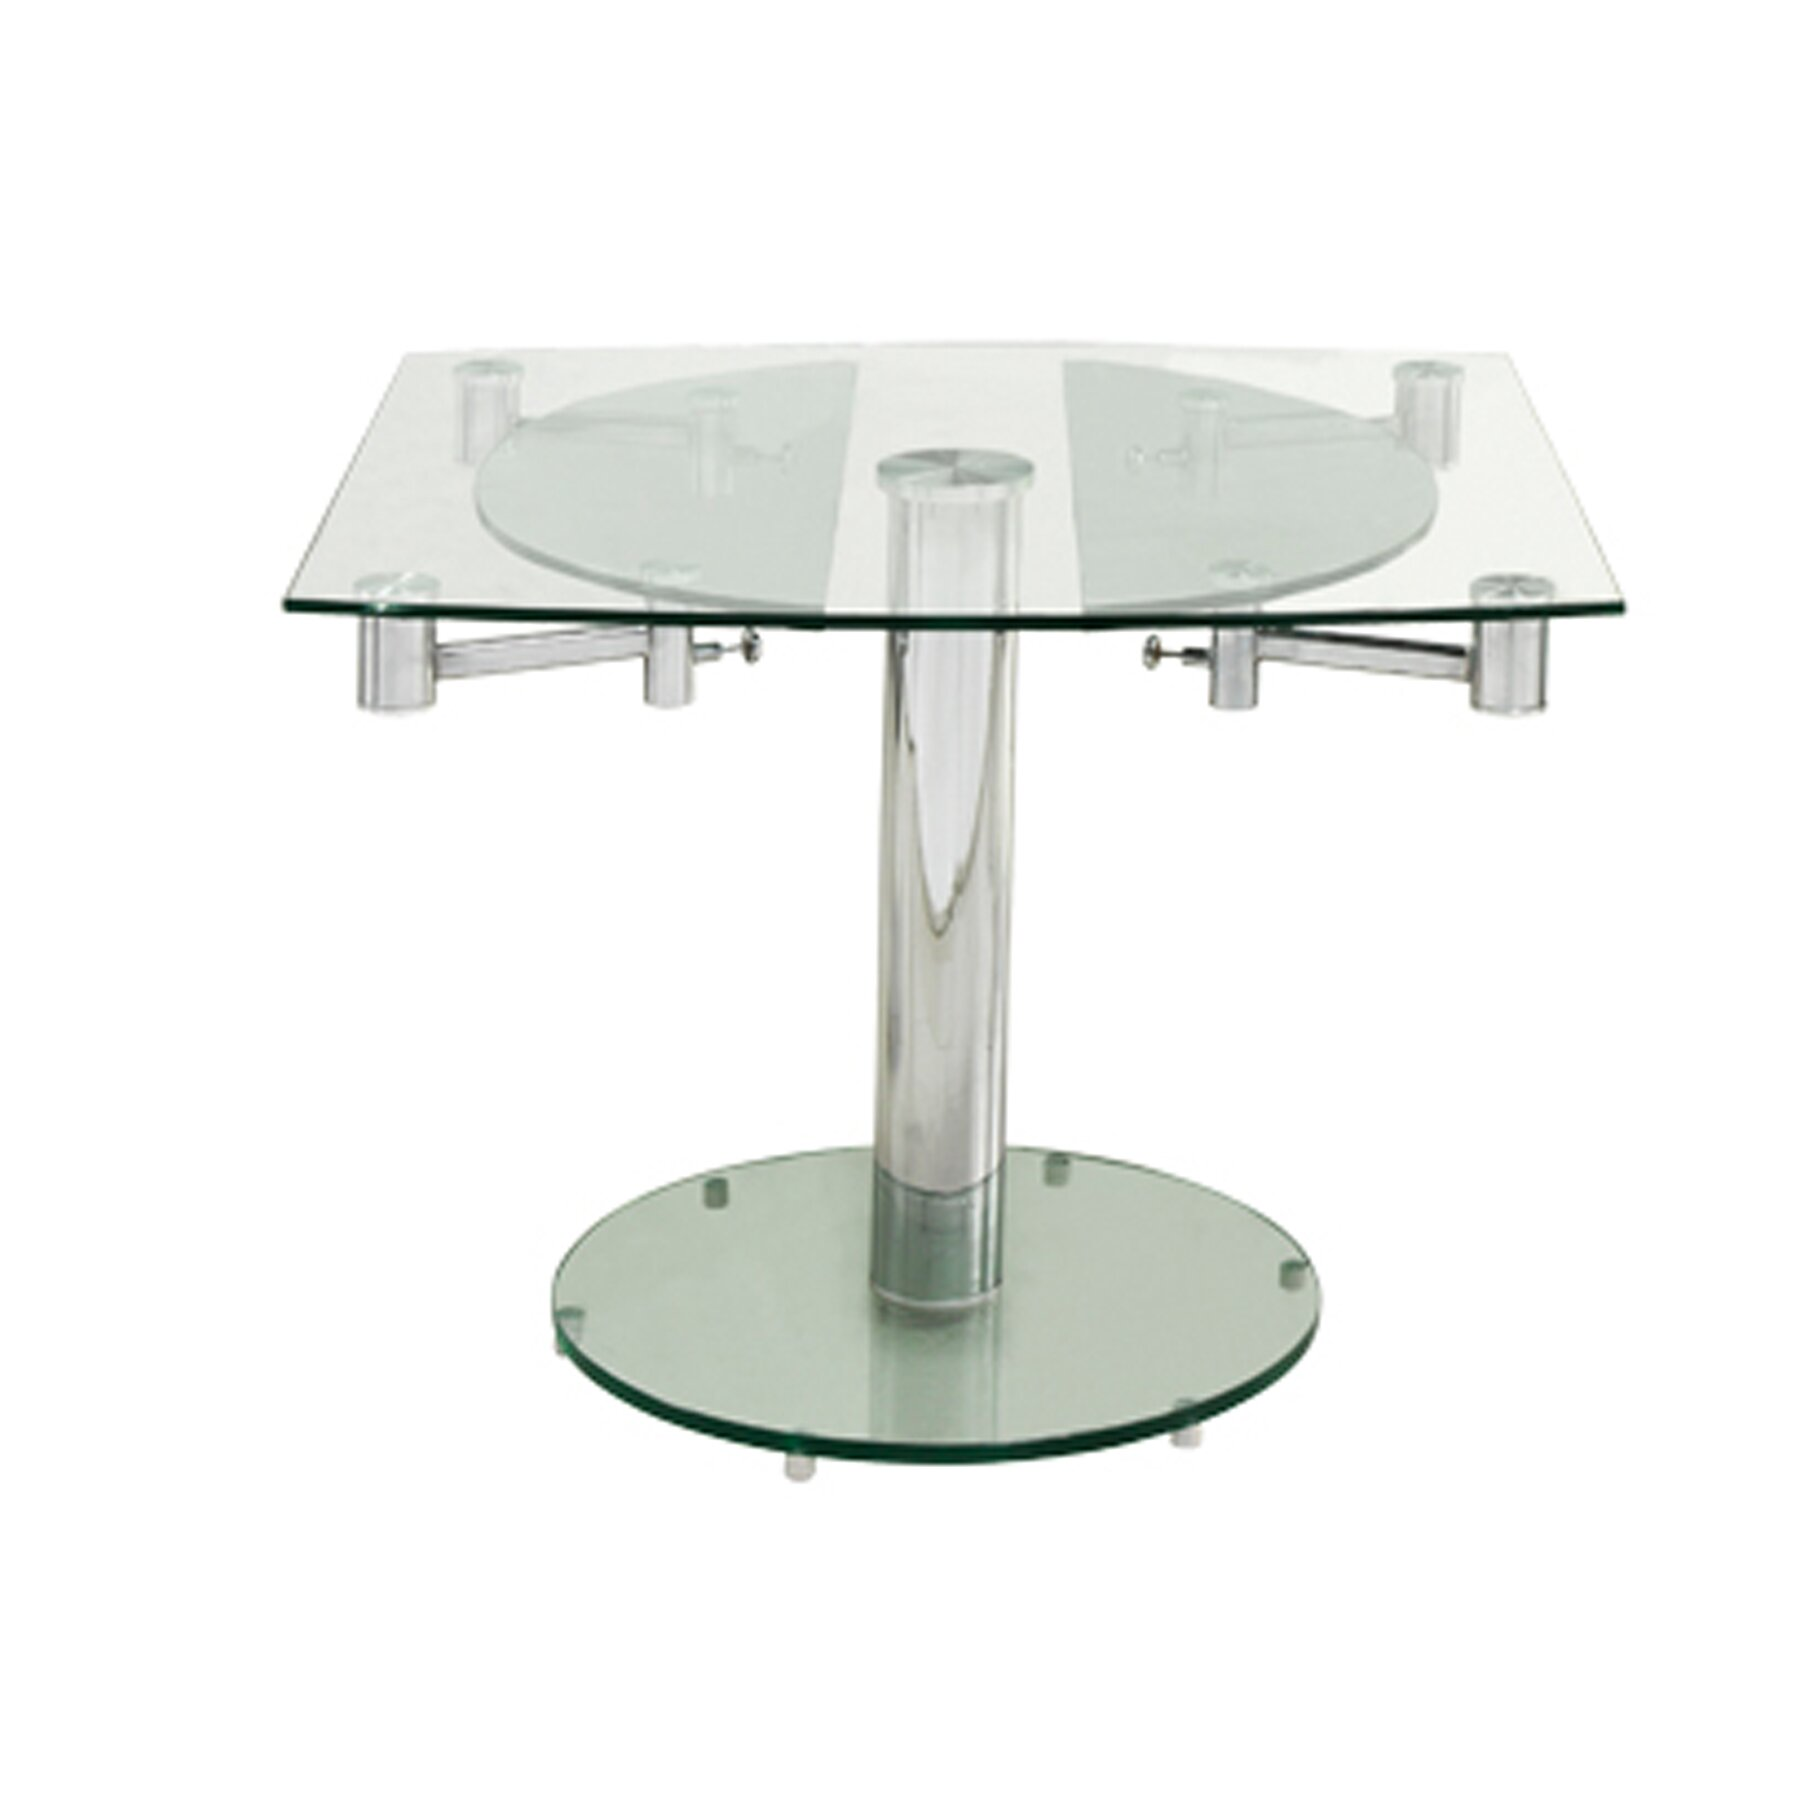 Thao extendable dining table reviews allmodern for Regulation 85 table a